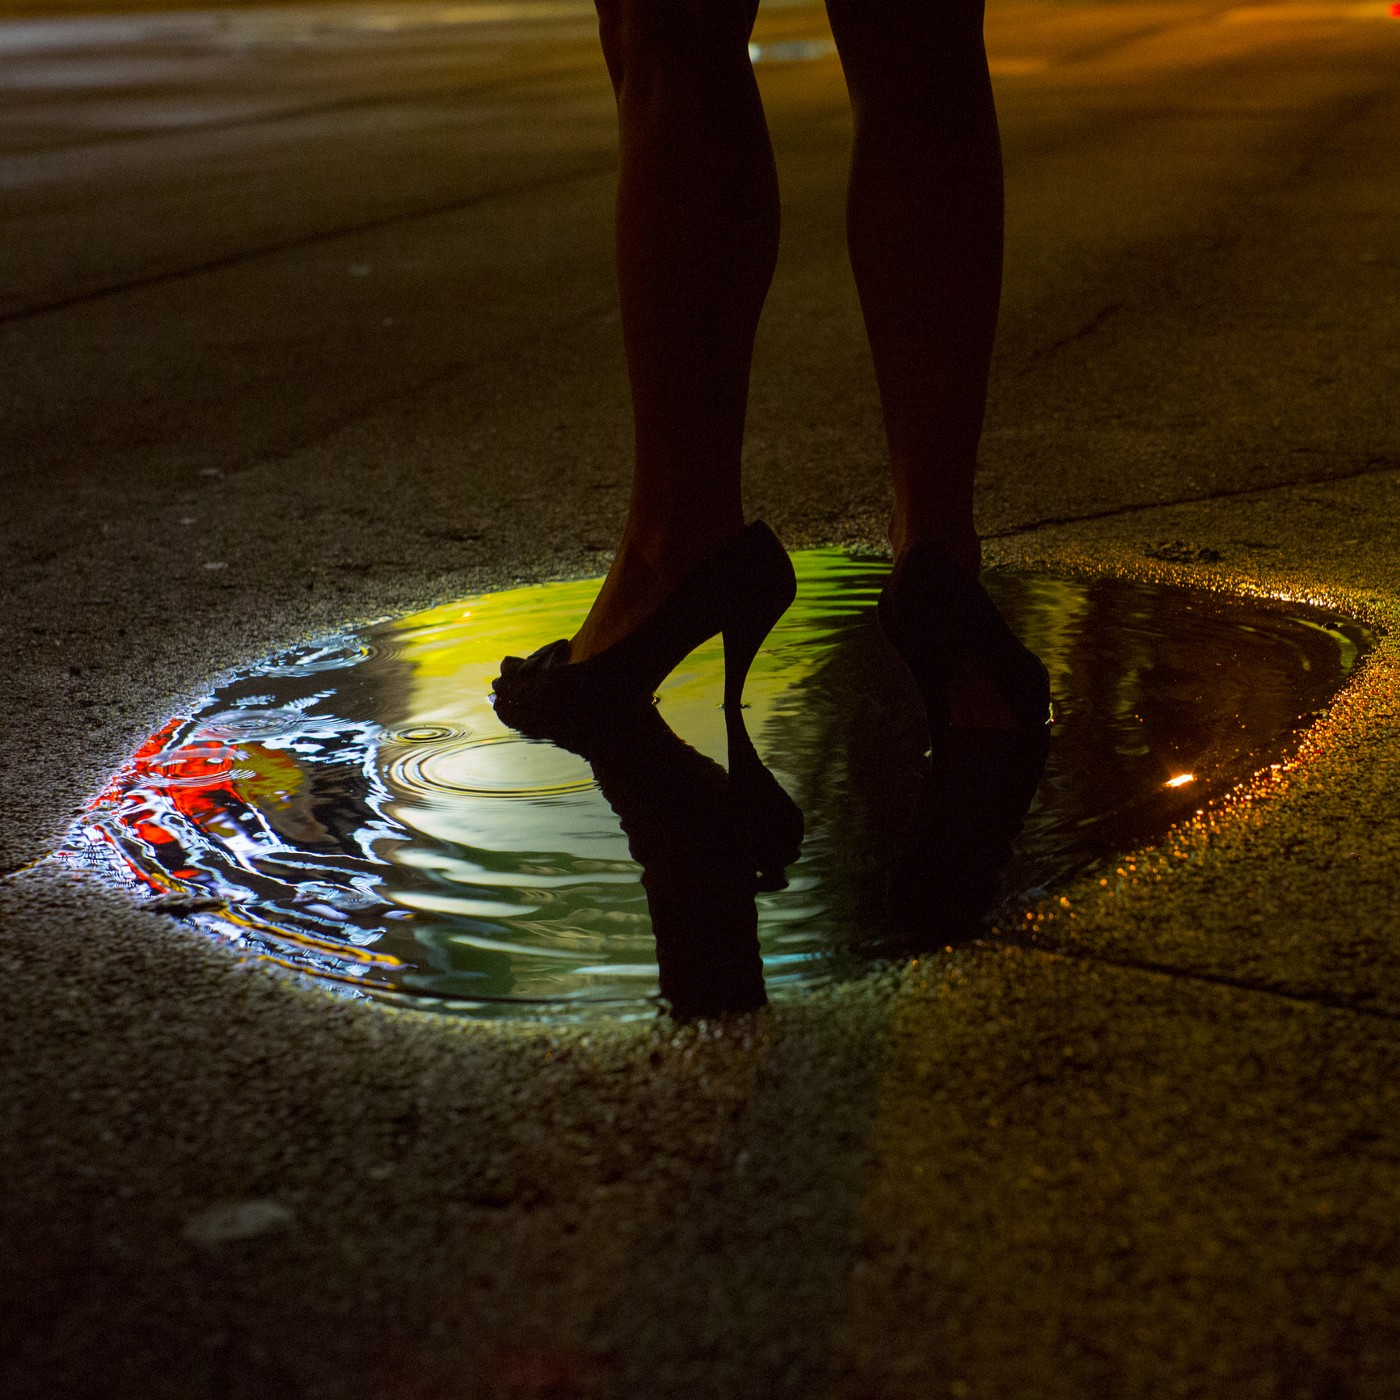 Person wearing high heels standing in a puddle at night.